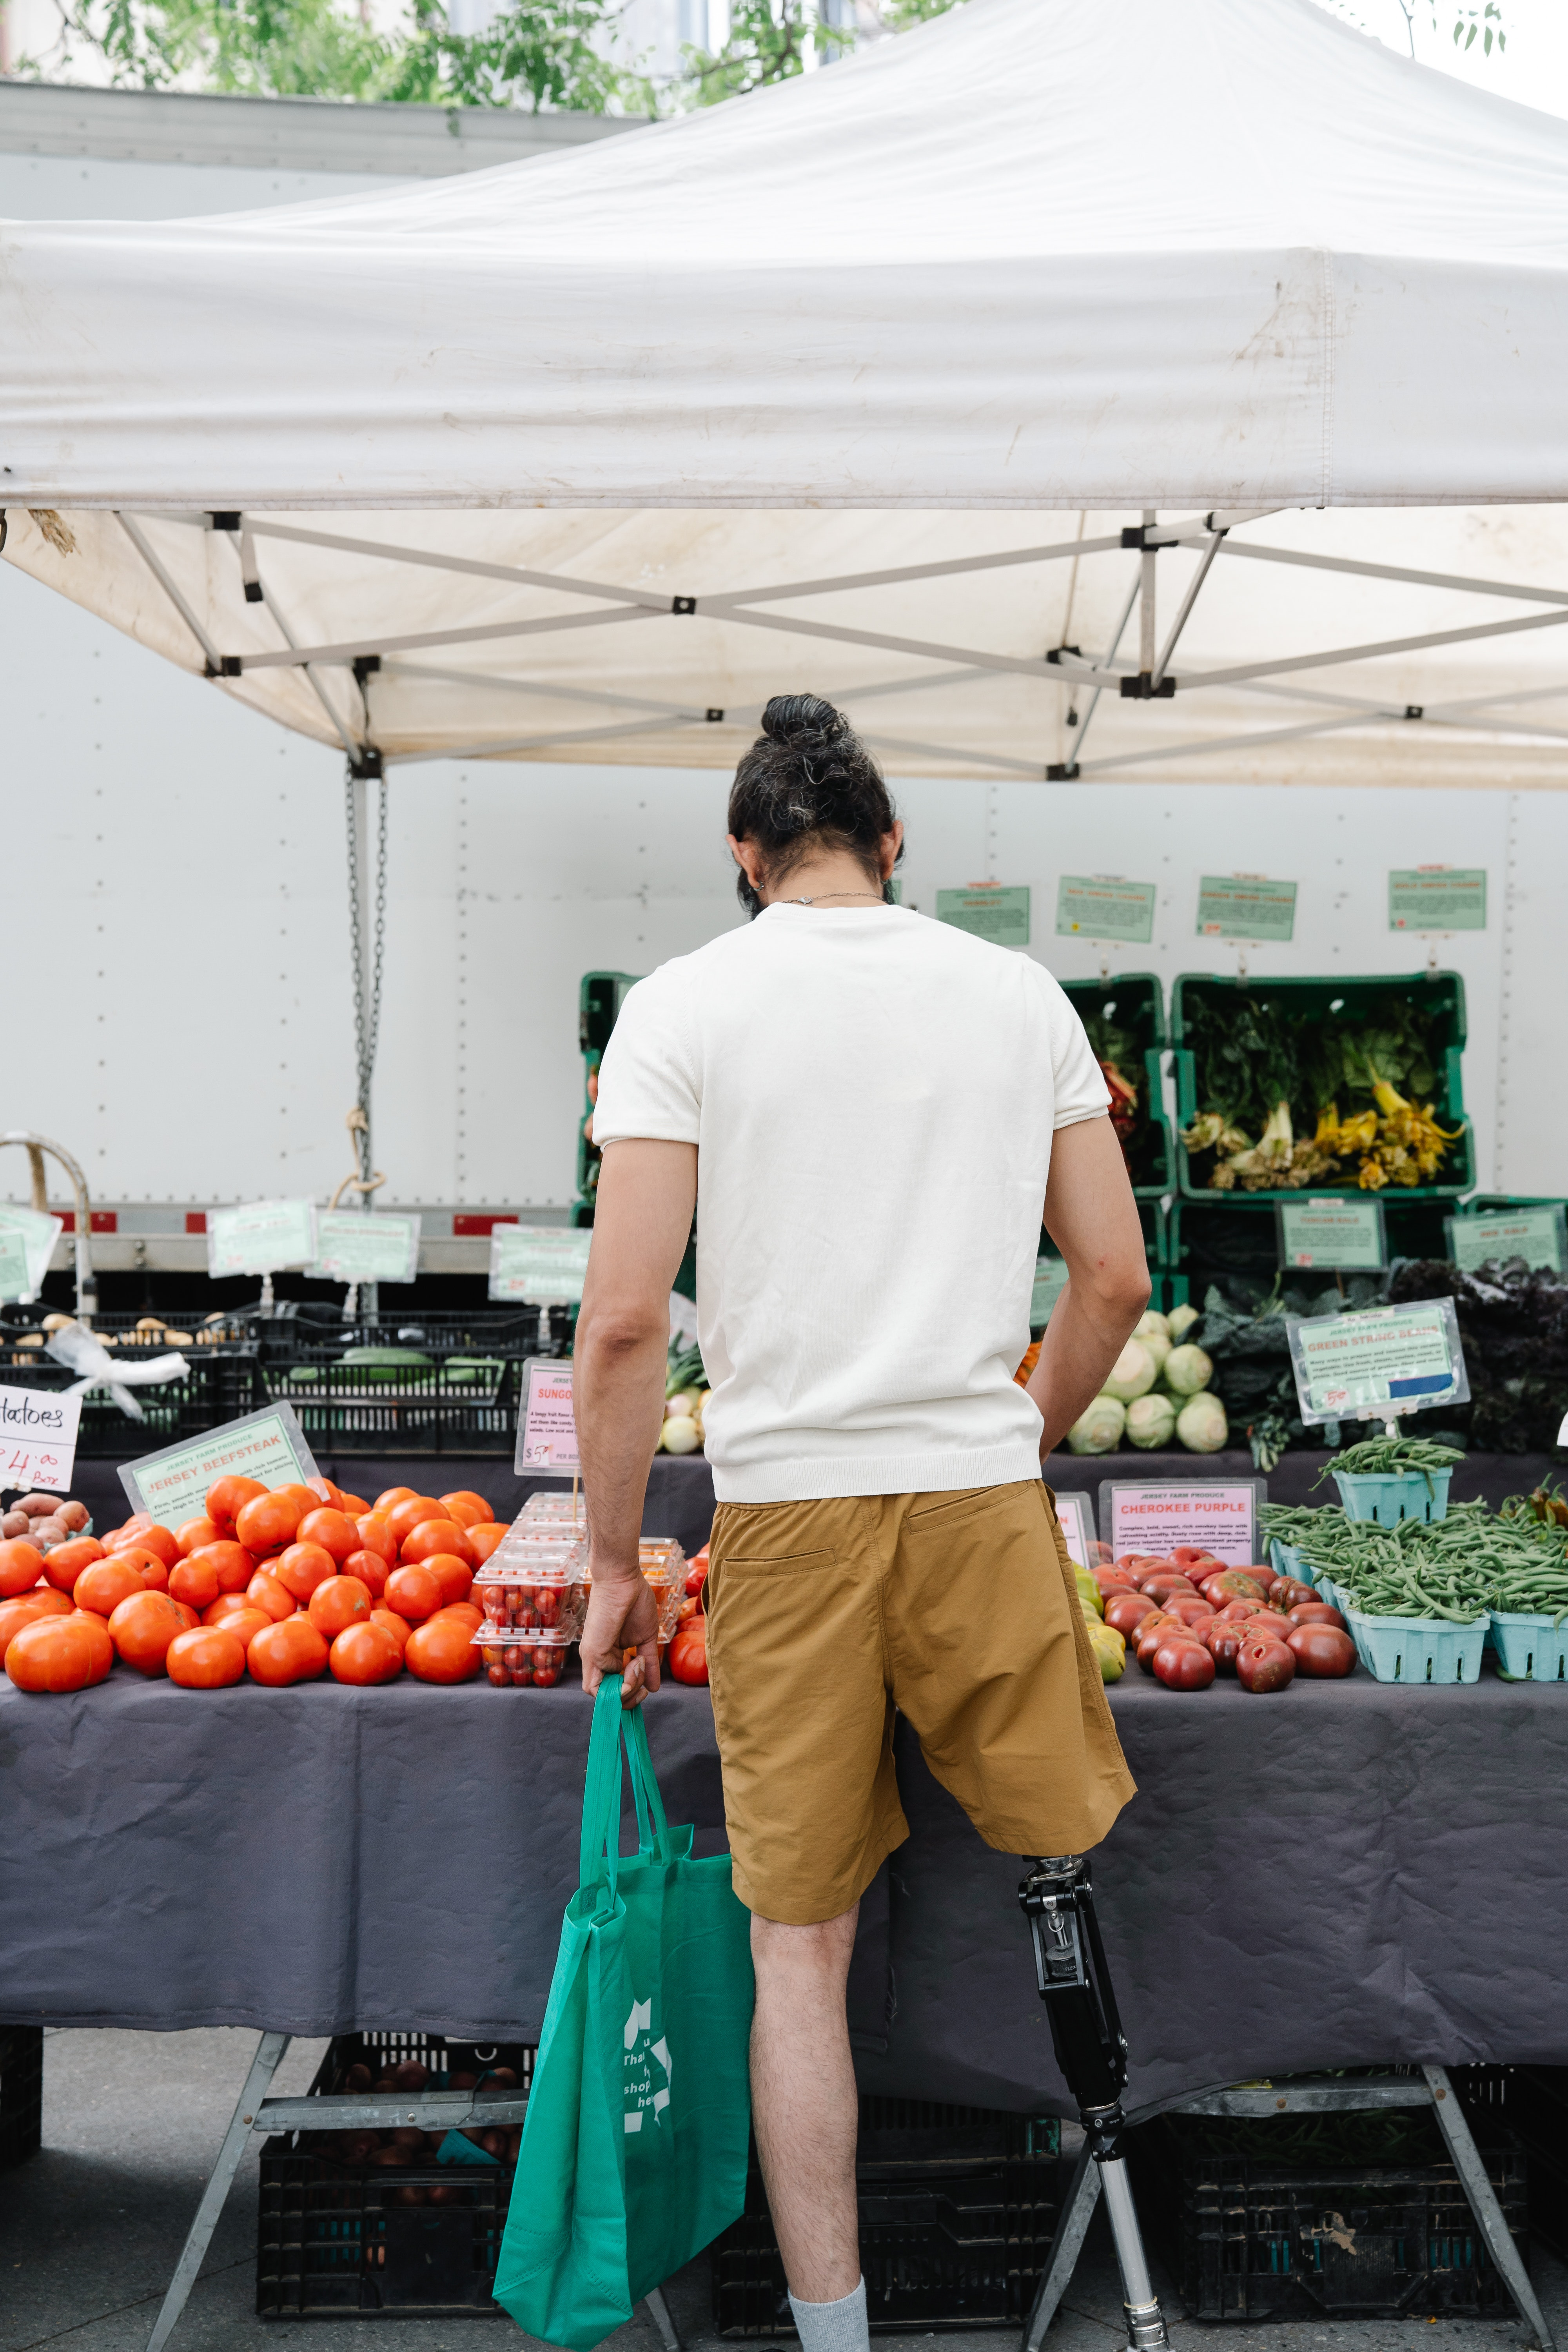 Man with a prosthetic leg standing in front of Fruit Stand